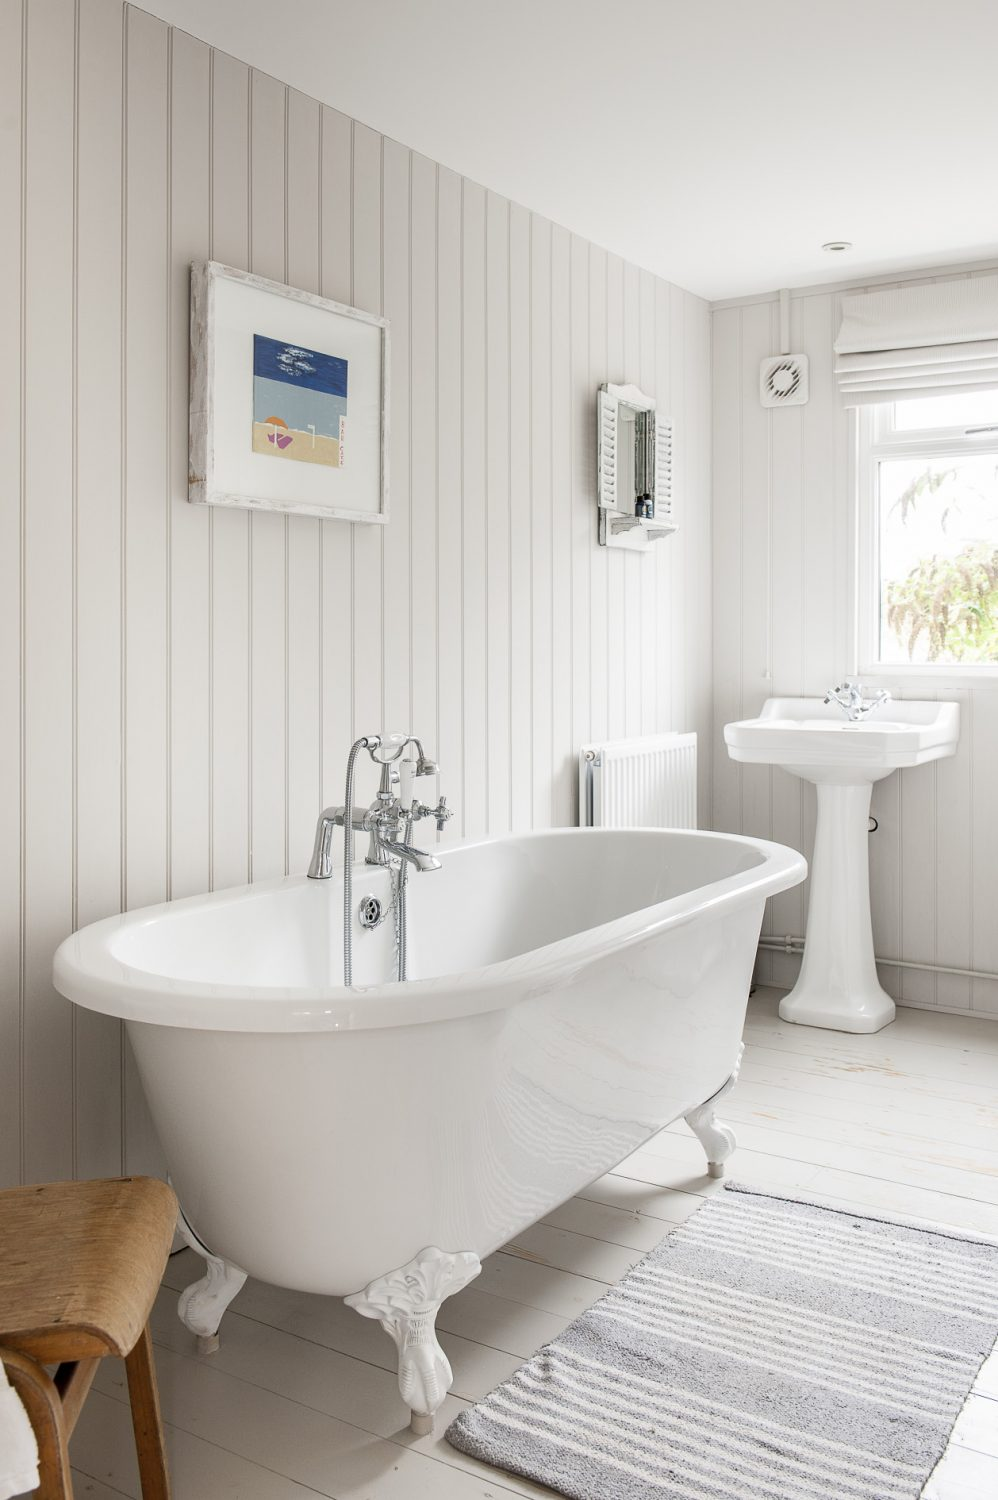 Over the free-standing bath in the in new bathroom is a picture by Francesca's artist uncle, Nick Maddison